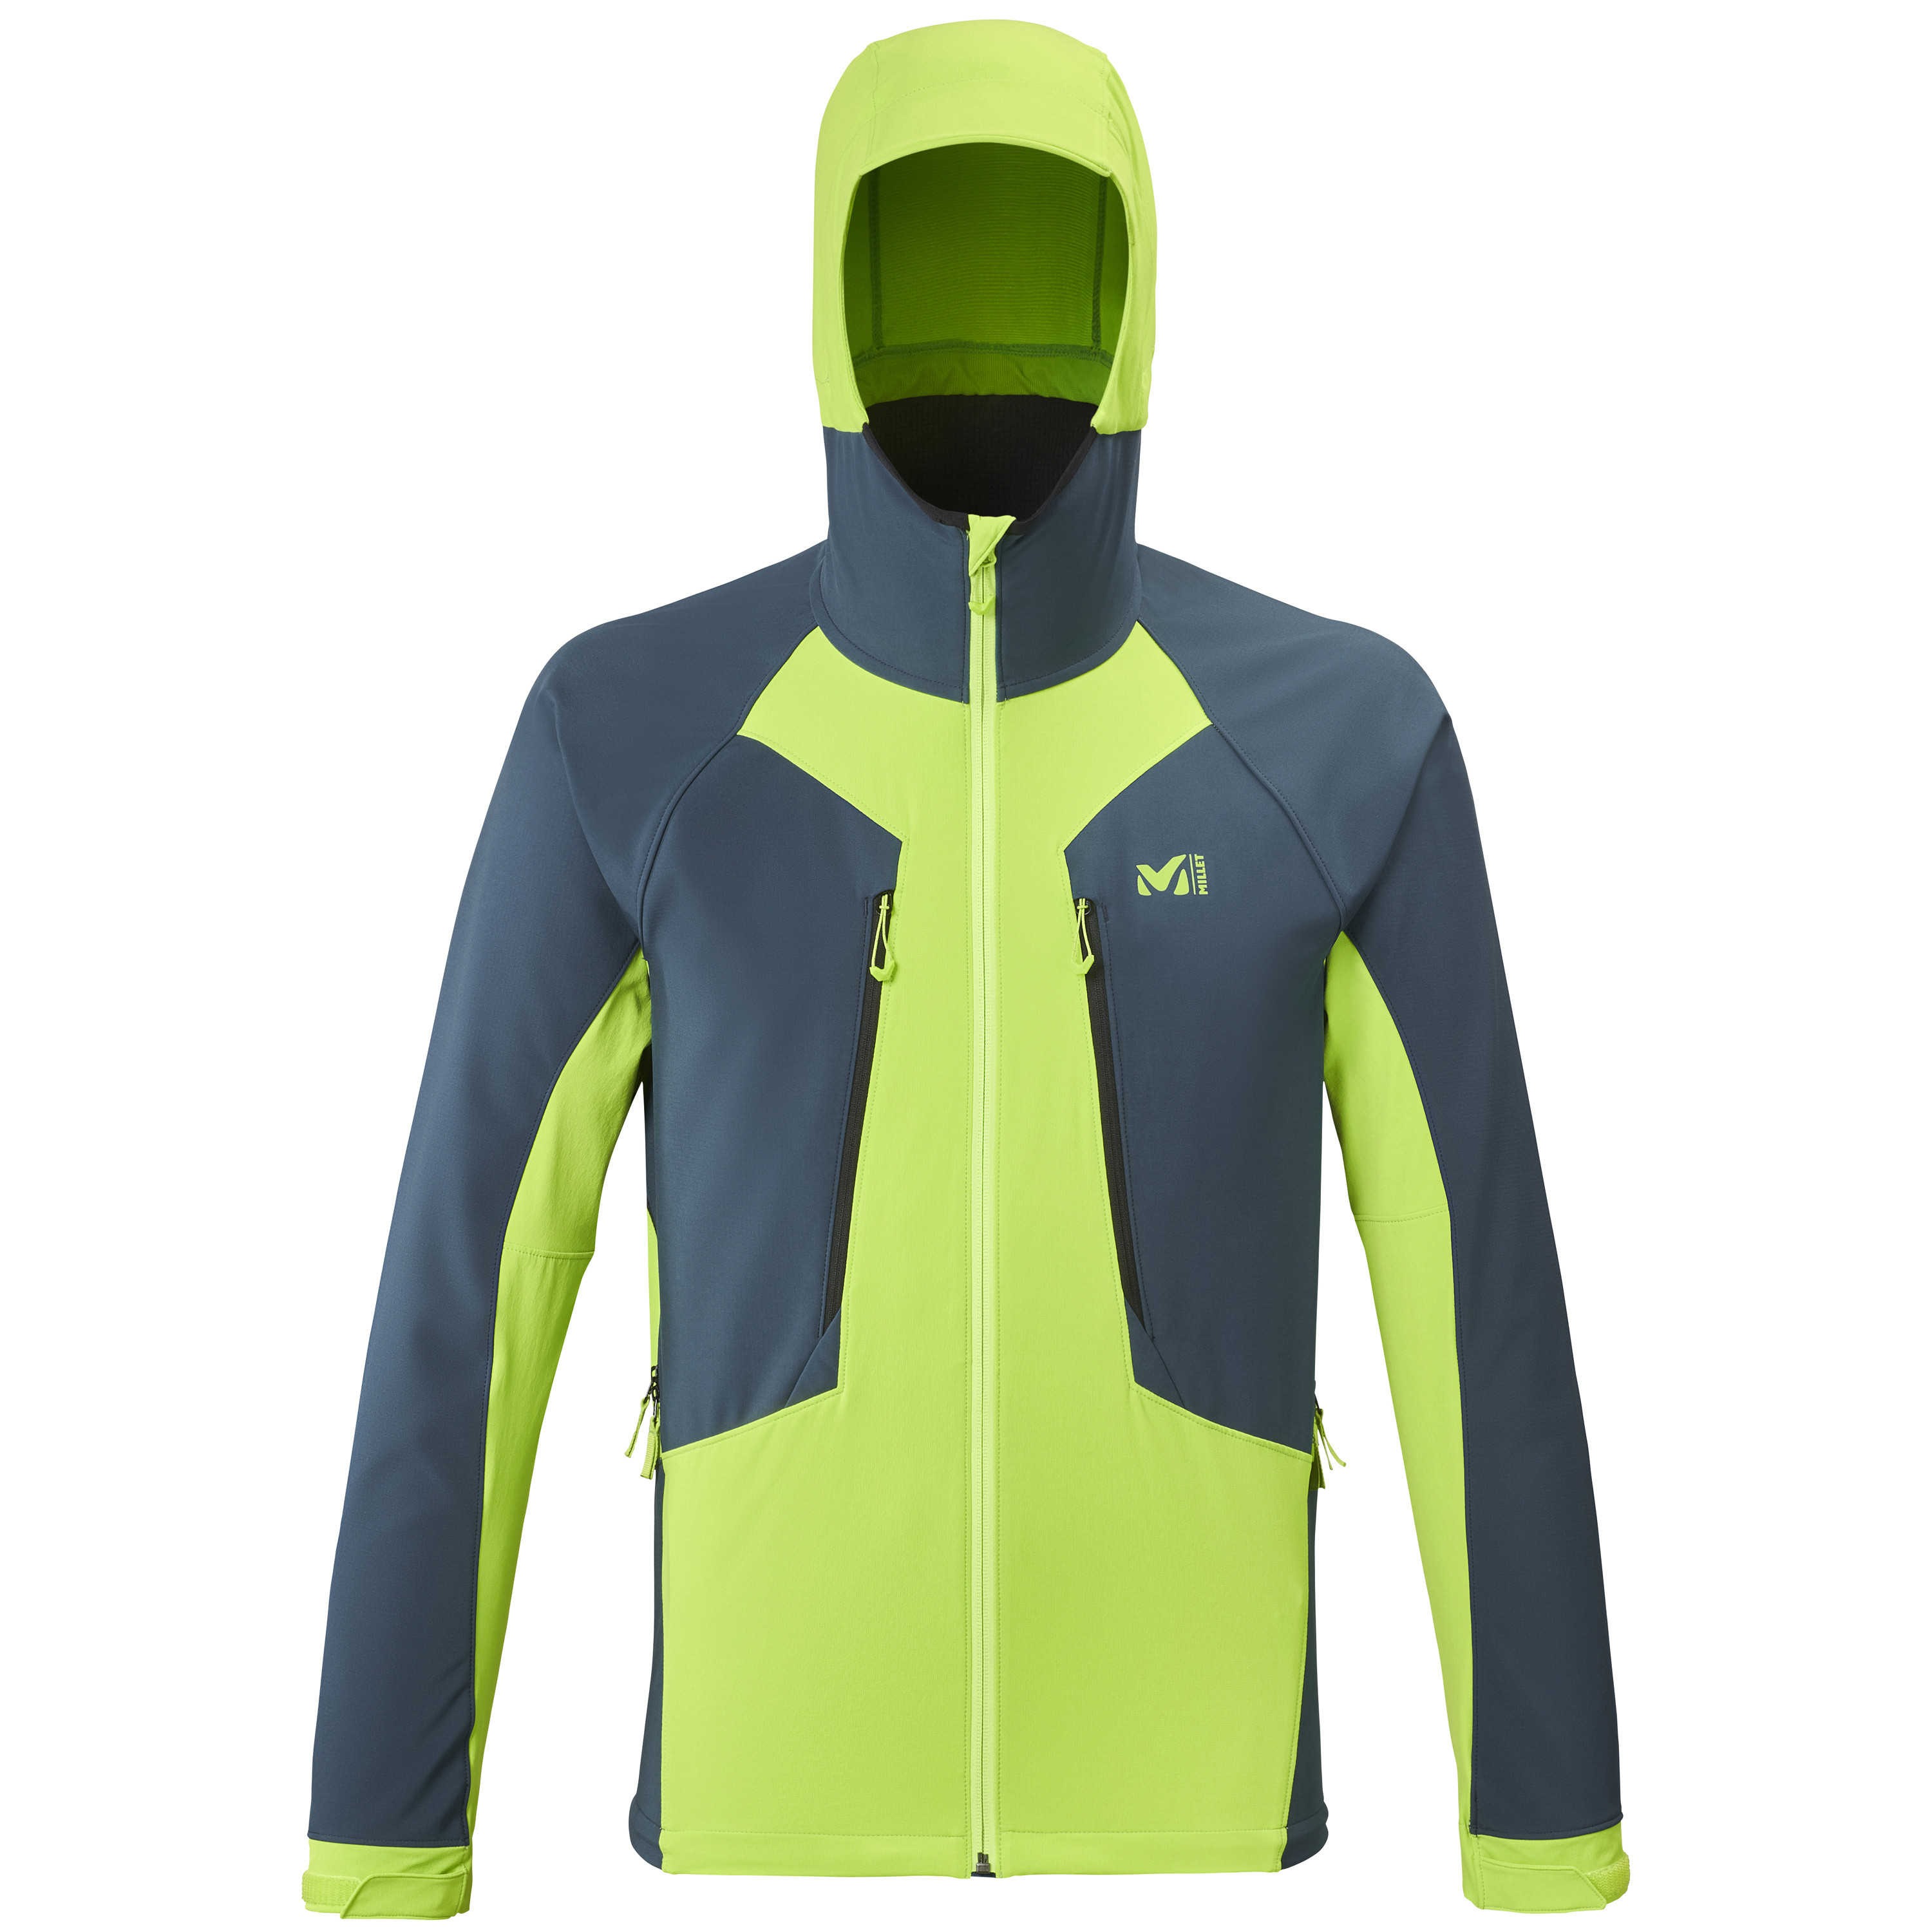 TOURING SHIELD EXTREME HOODIE M